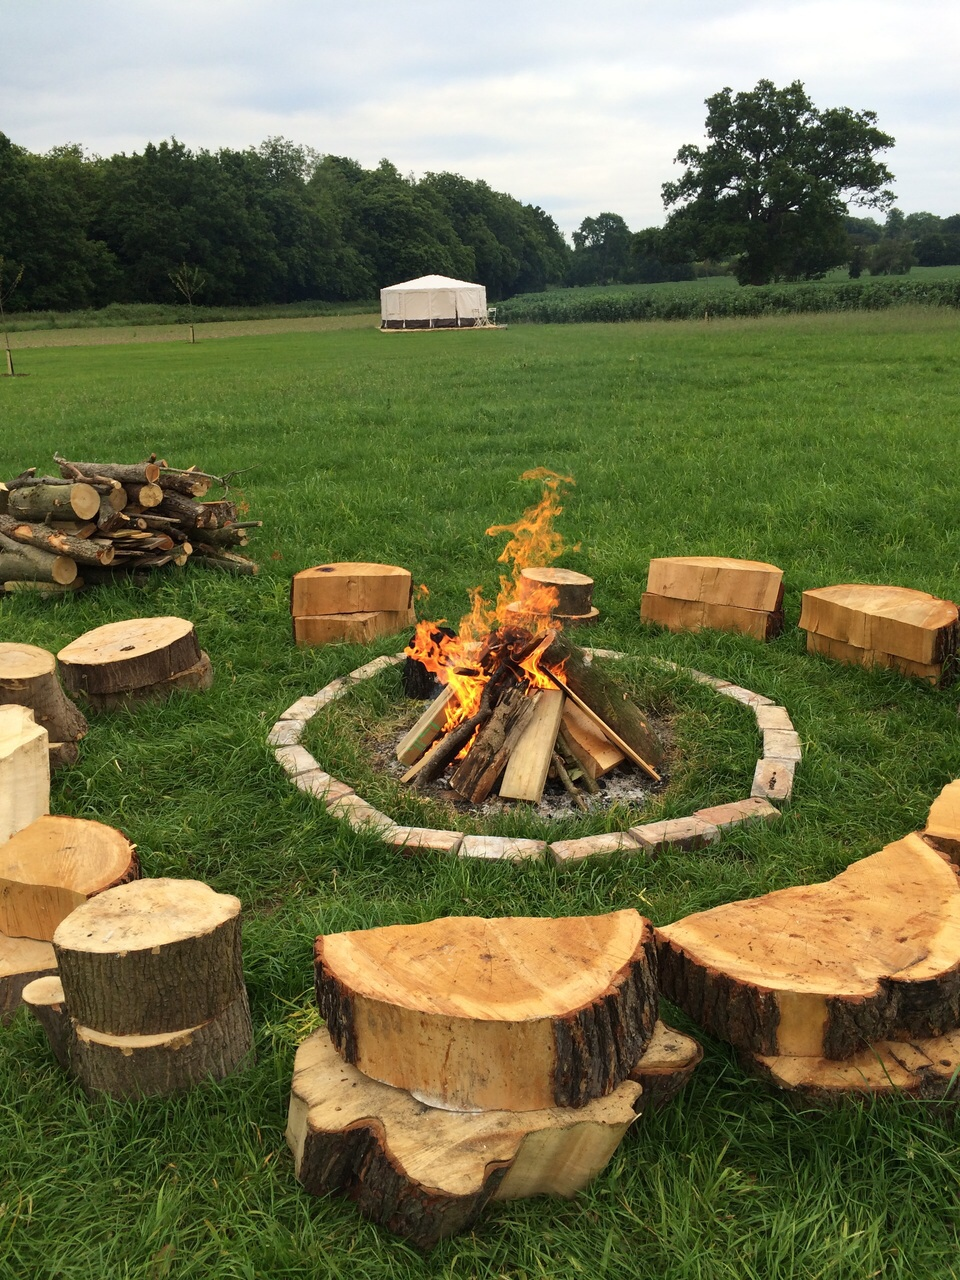 Home farm glamping campfire